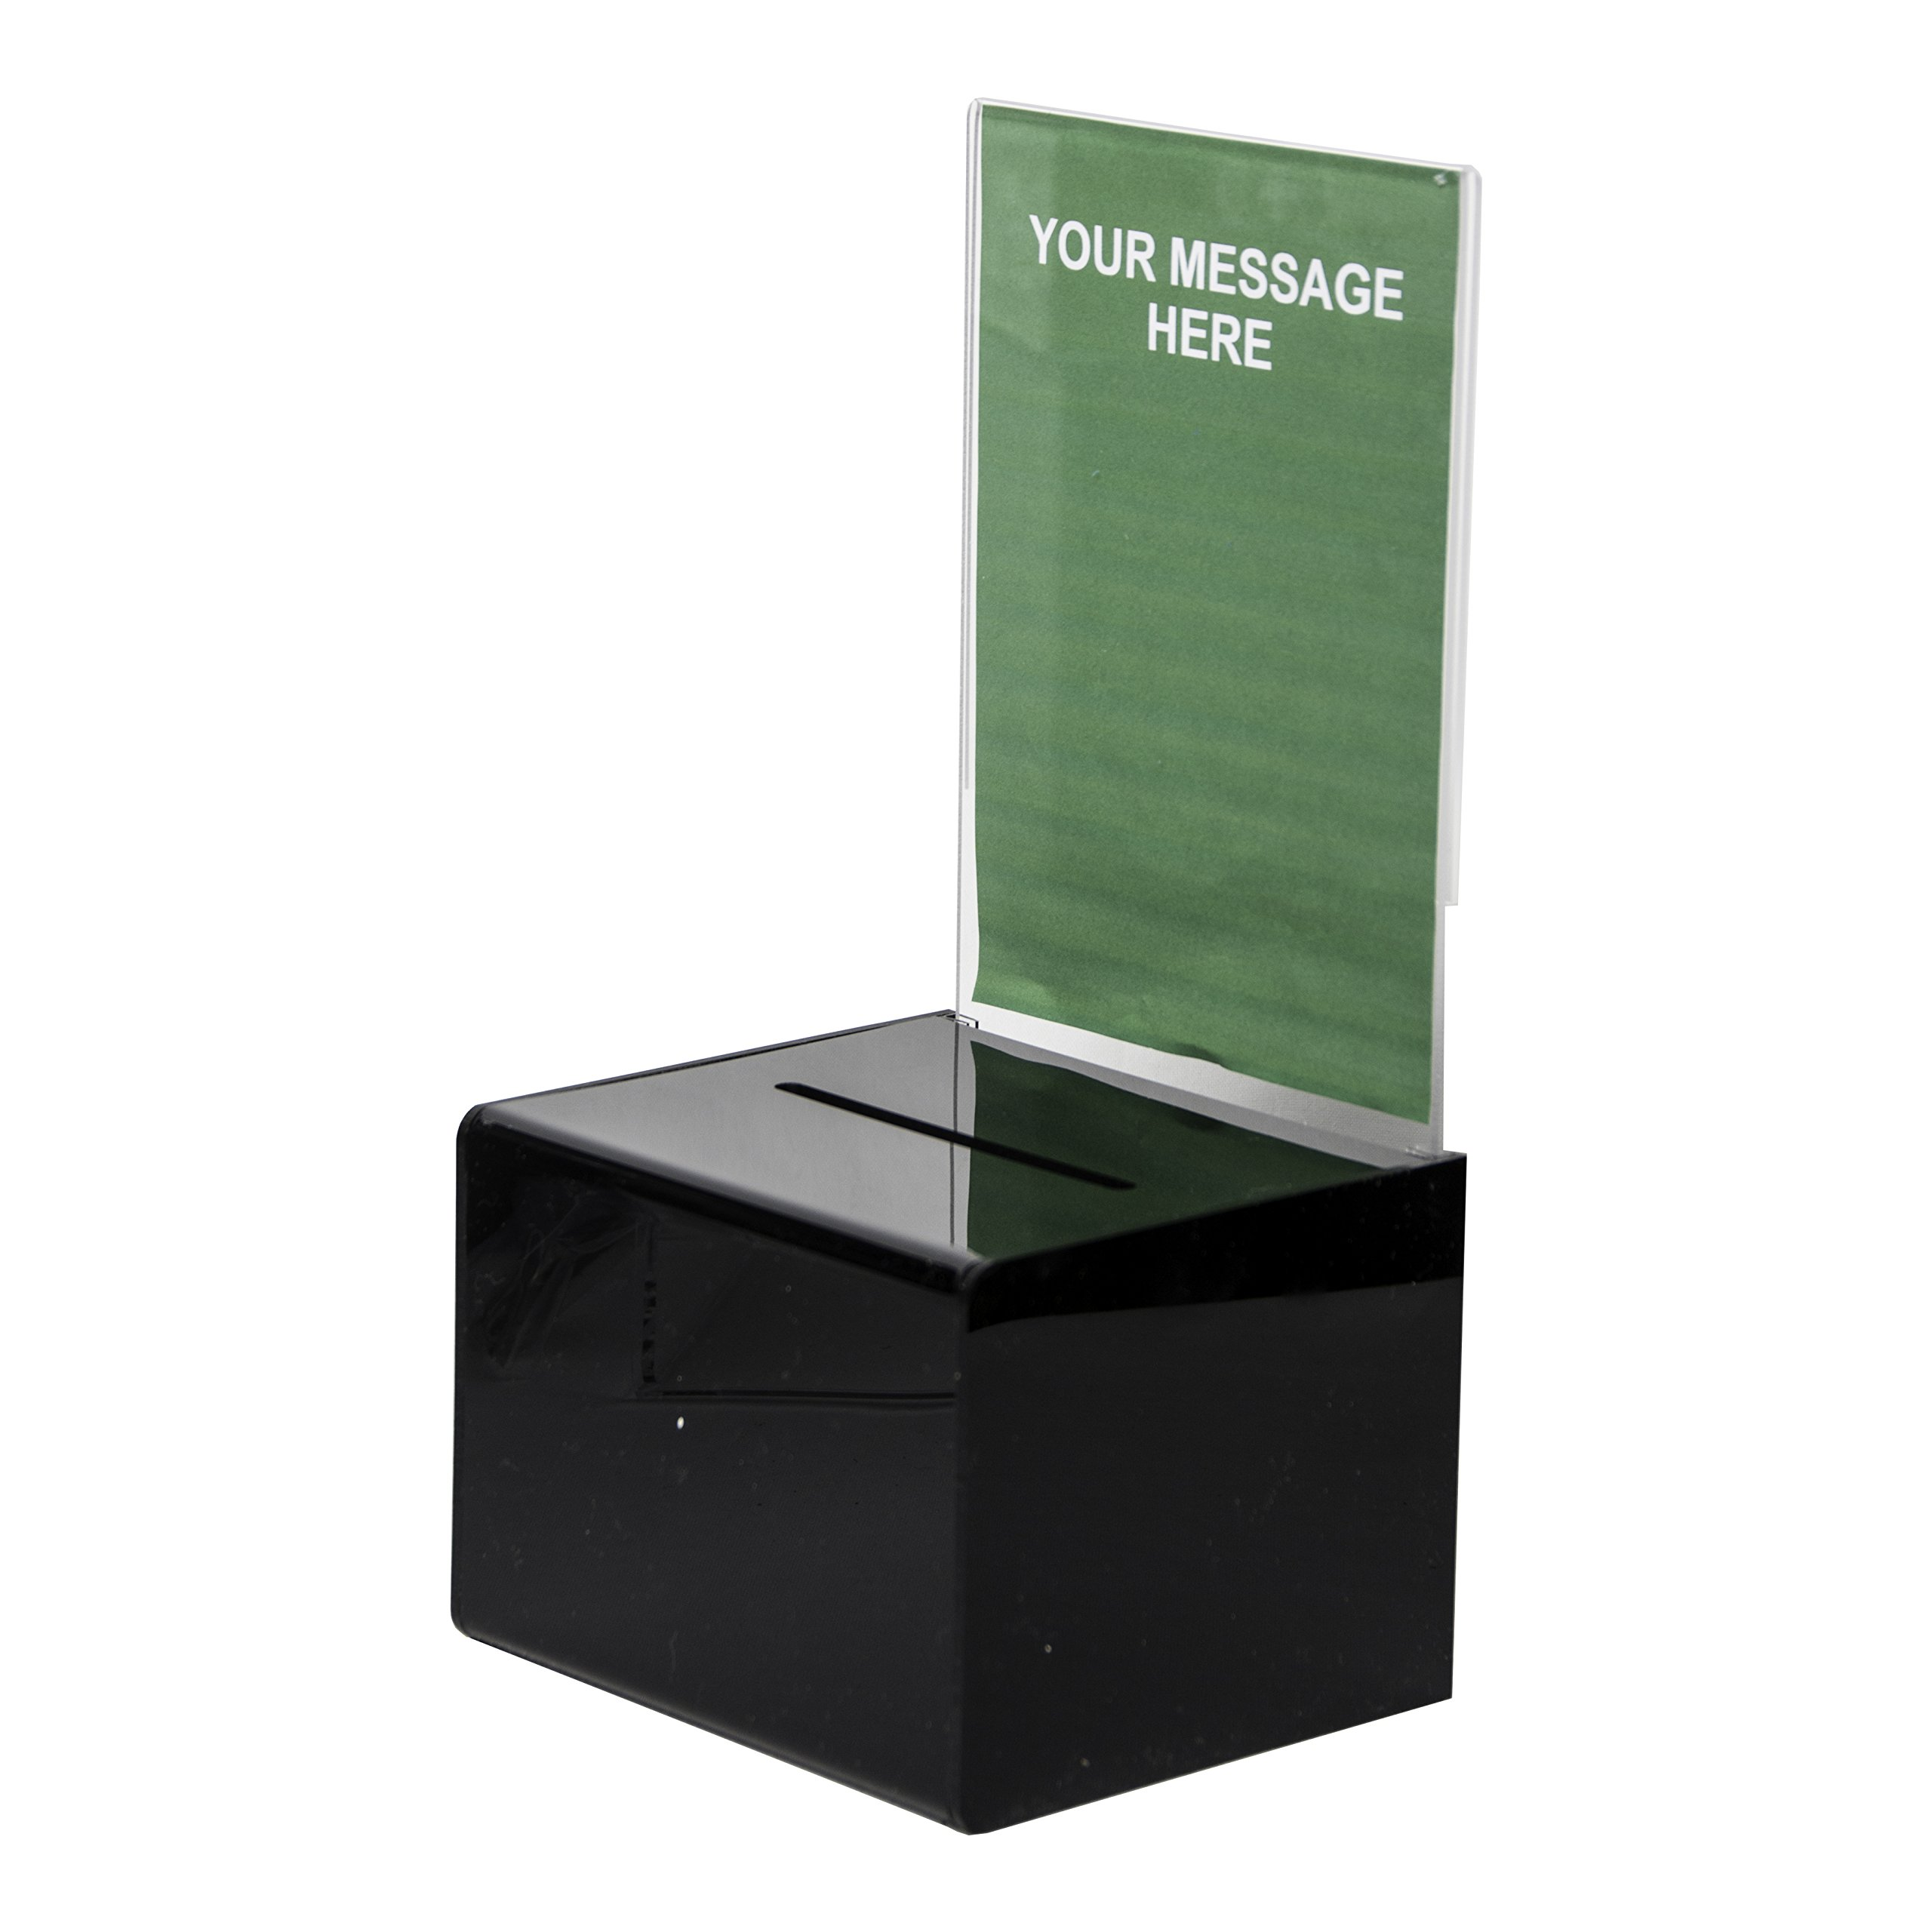 Clear-Ad - BB-545 - Black Acrylic Ballot Box 5x4x5 with Sign Holder - Plastic Countertop Container - Best for Donation, Voting, Charity, Survey, Raffle, Contest, Suggestions, Comments (Pack of 2)